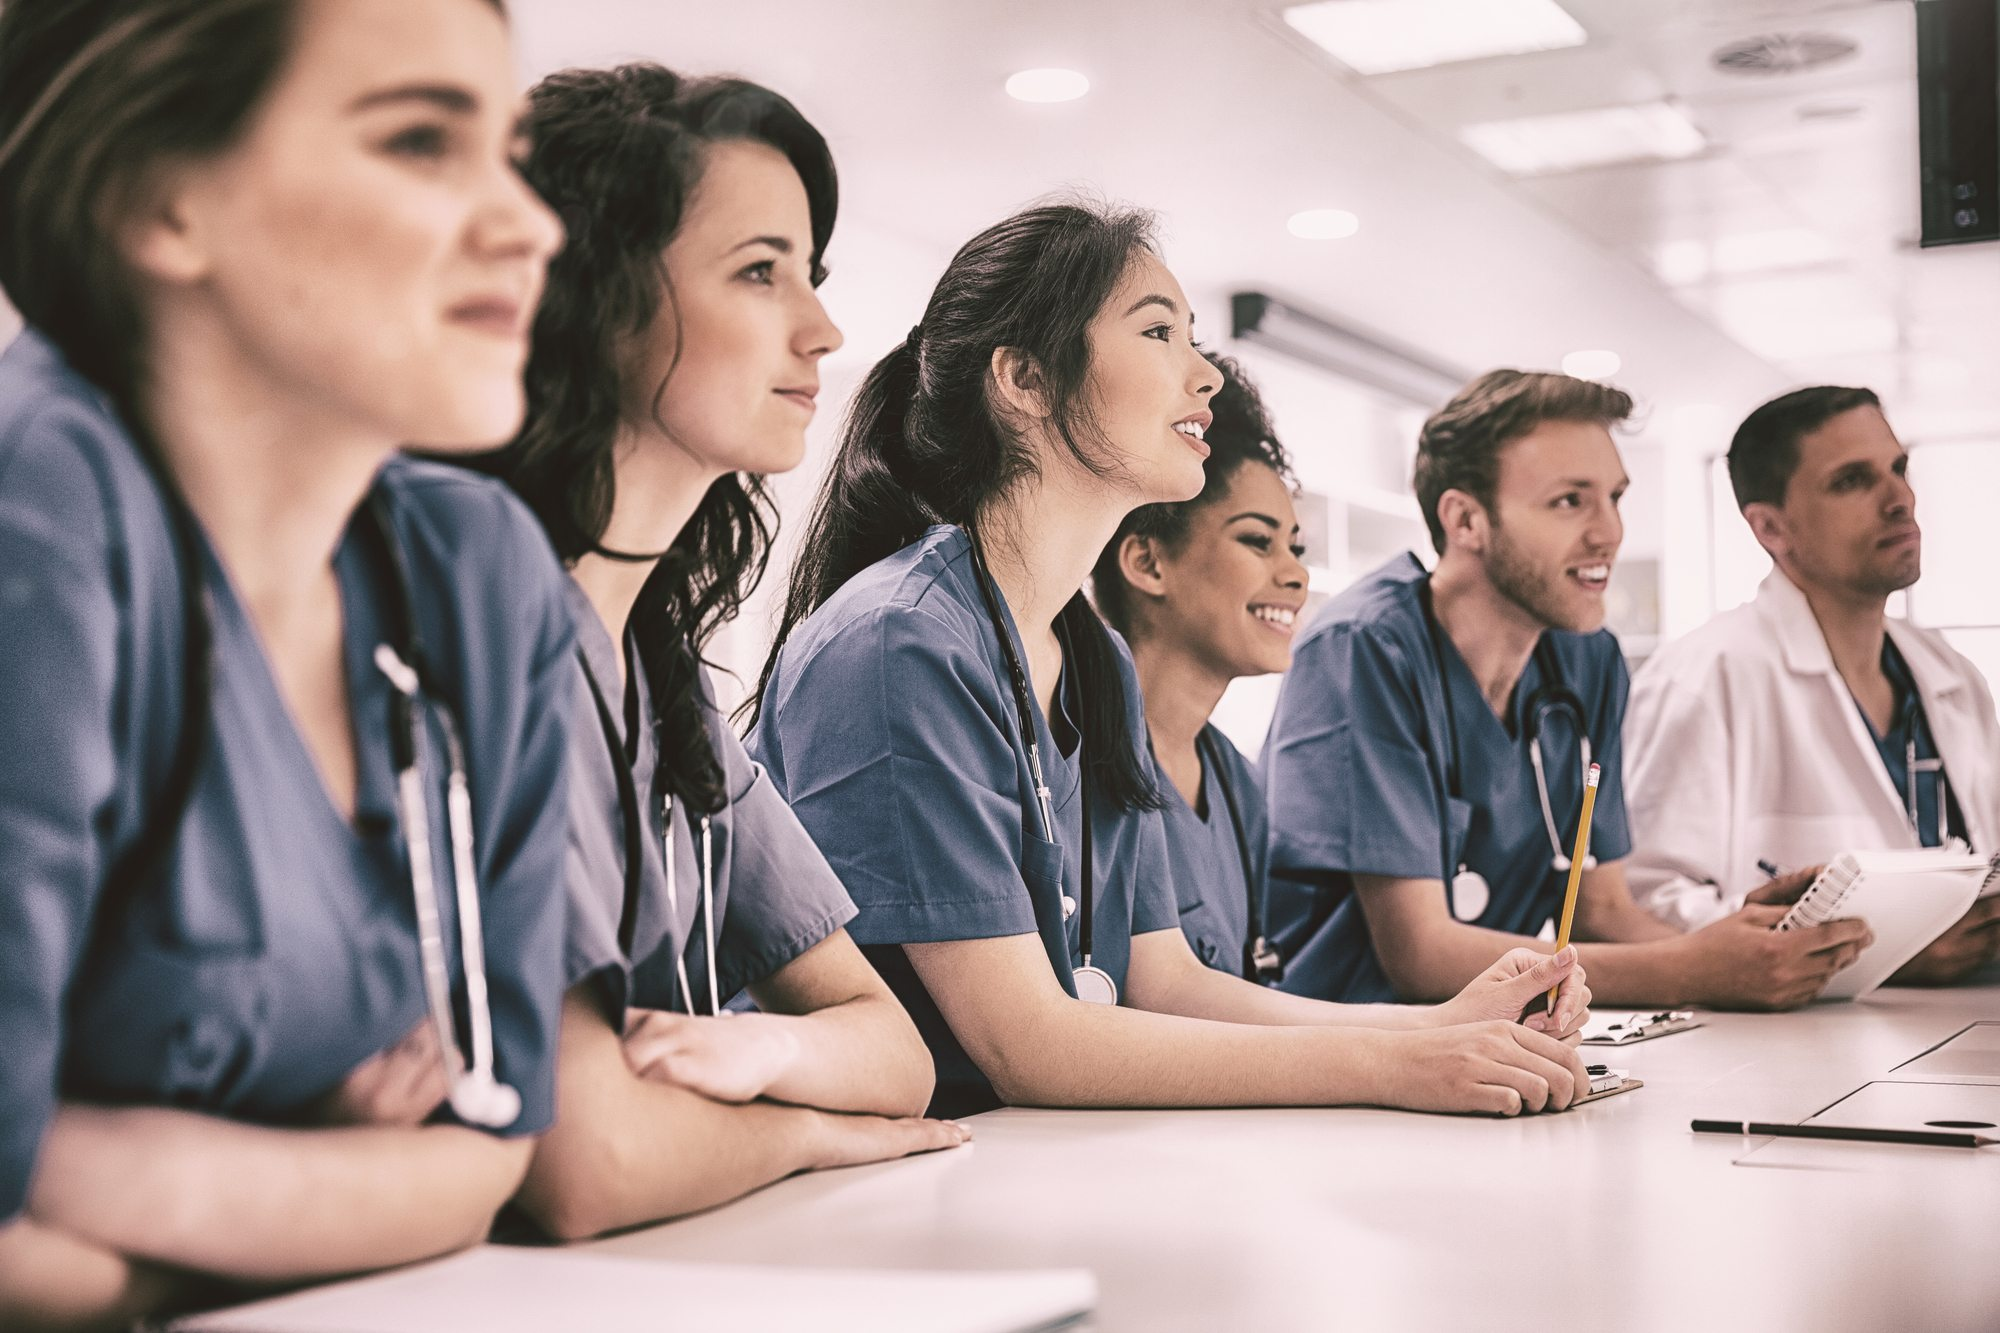 50 Best Nursing Careers Based on Salary and Demand - Top RN to BSN